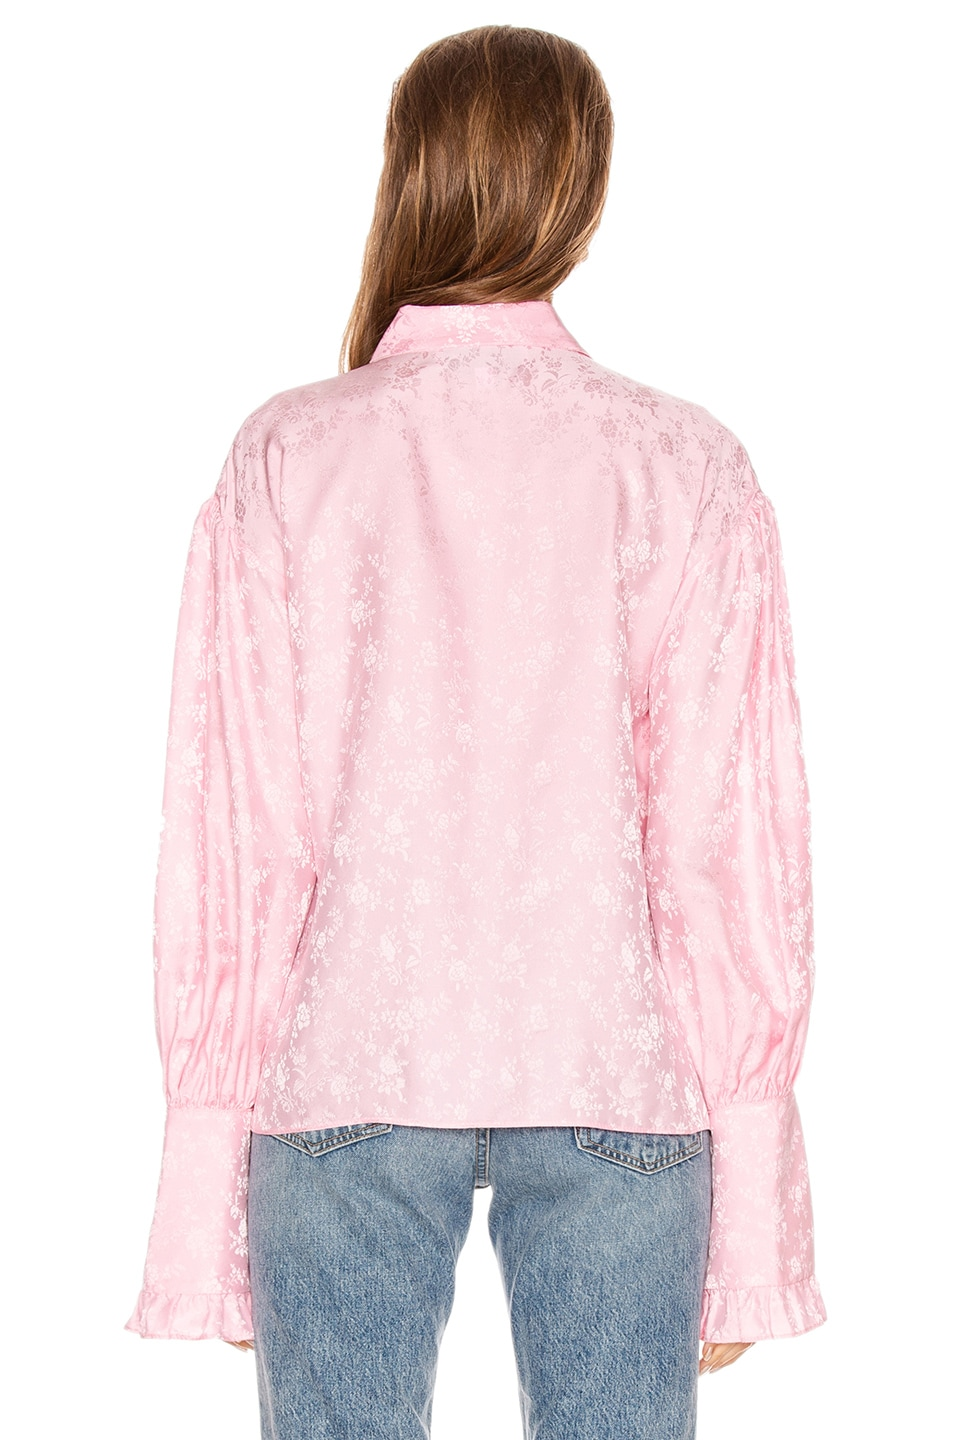 Image 3 of Les Reveries Ruffle Cuff Top in Rose Pink